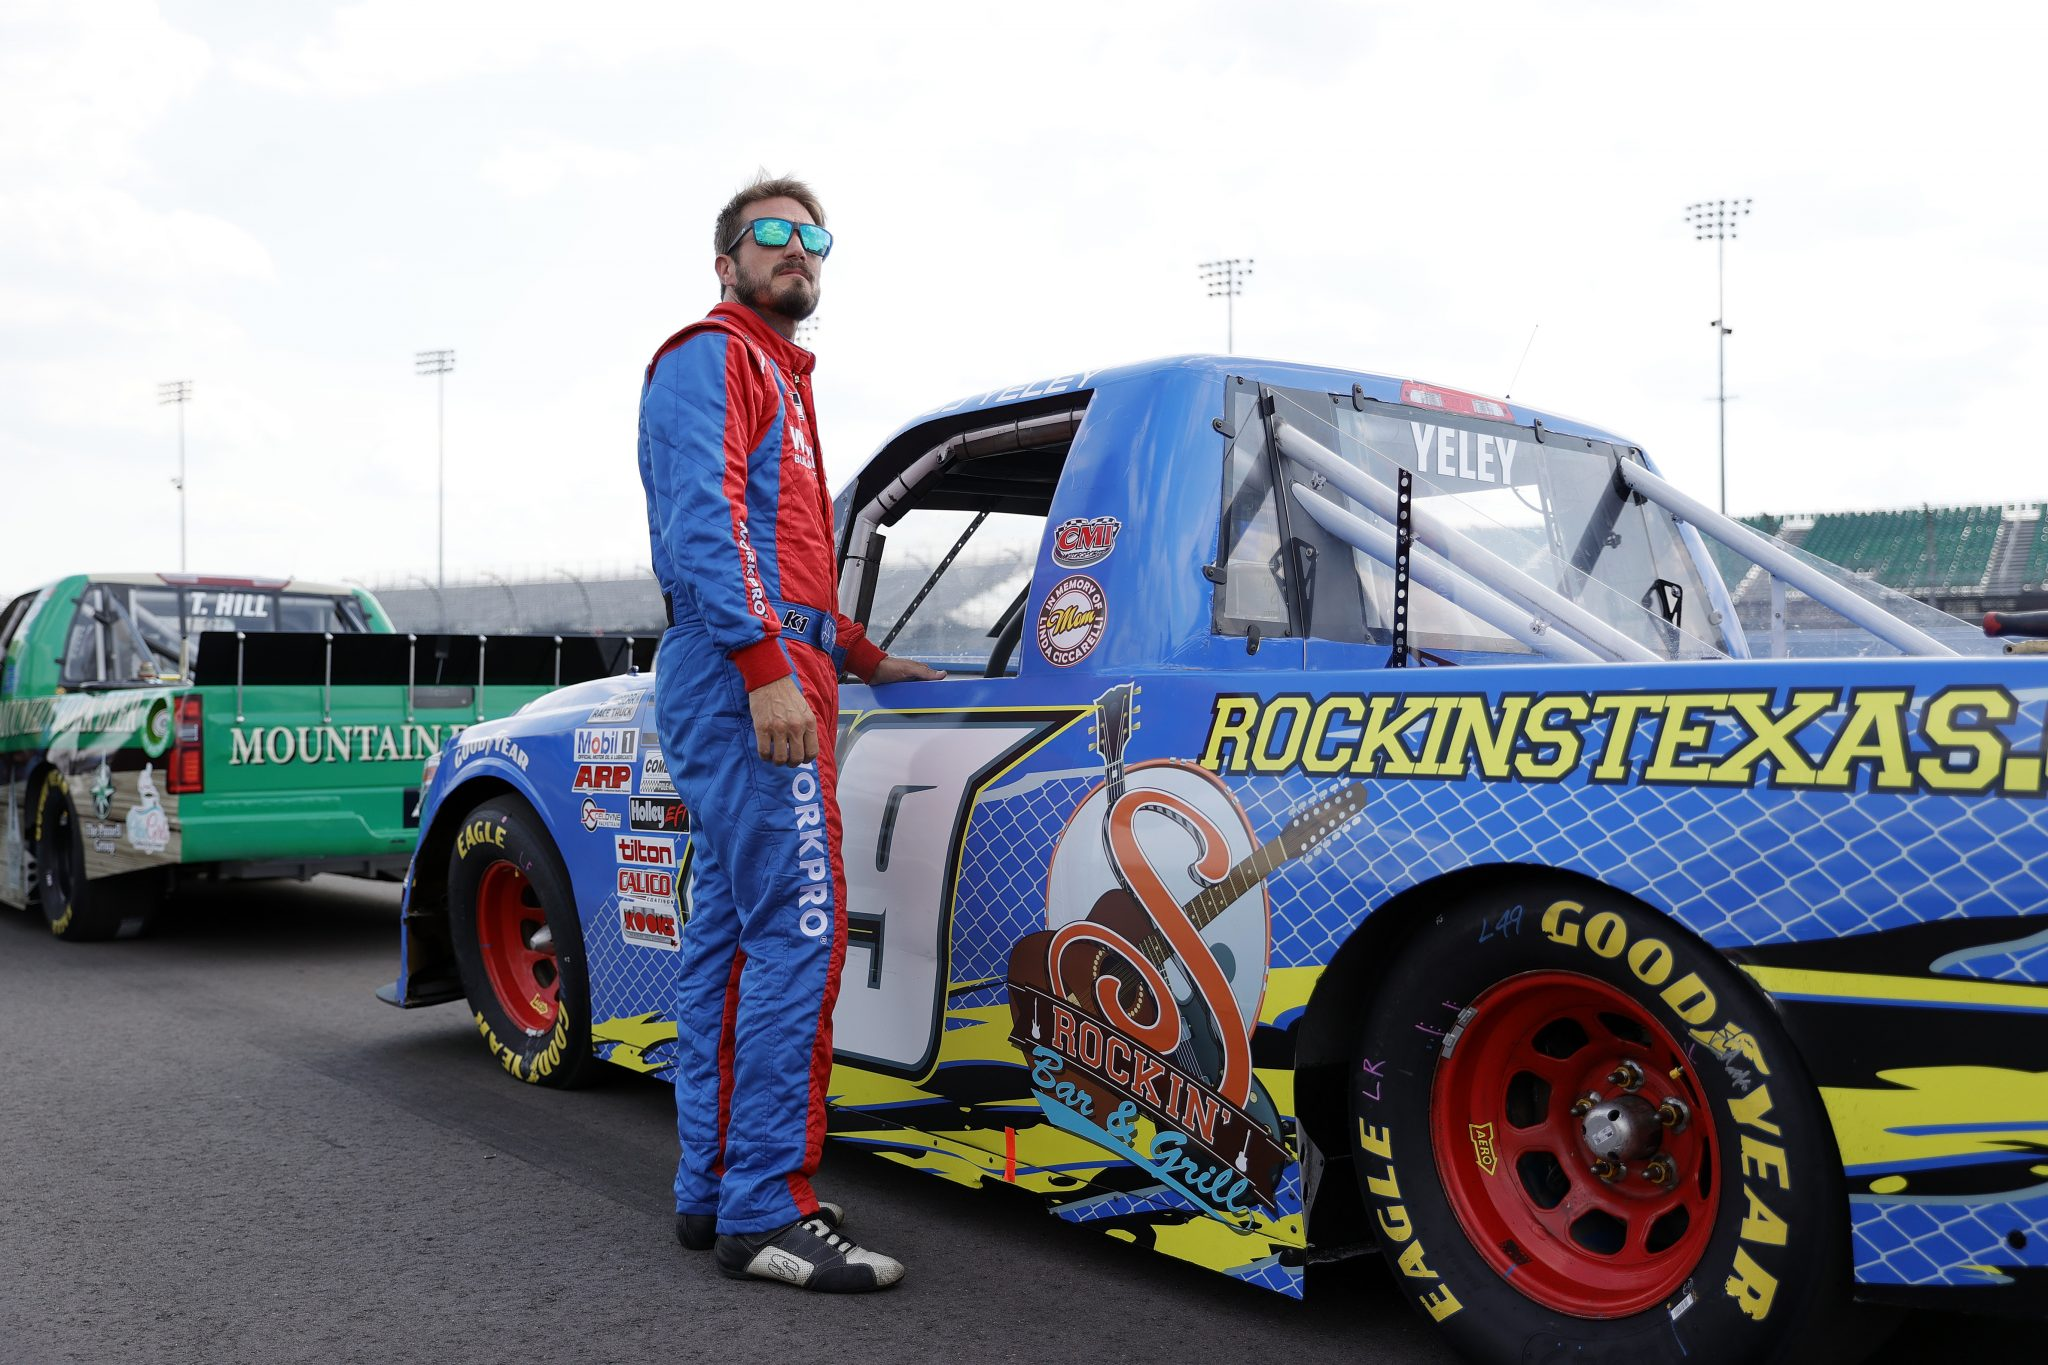 LEBANON, TENNESSEE - JUNE 18: JJ Yeley, driver of the #49 Sam's Dock Toyota, waits on the grid during qualifying for the NASCAR Camping World Truck Series Rackley Roofing 200 at Nashville Superspeedway on June 18, 2021 in Lebanon, Tennessee. (Photo by Sarah Stier/Getty Images) | Getty Images